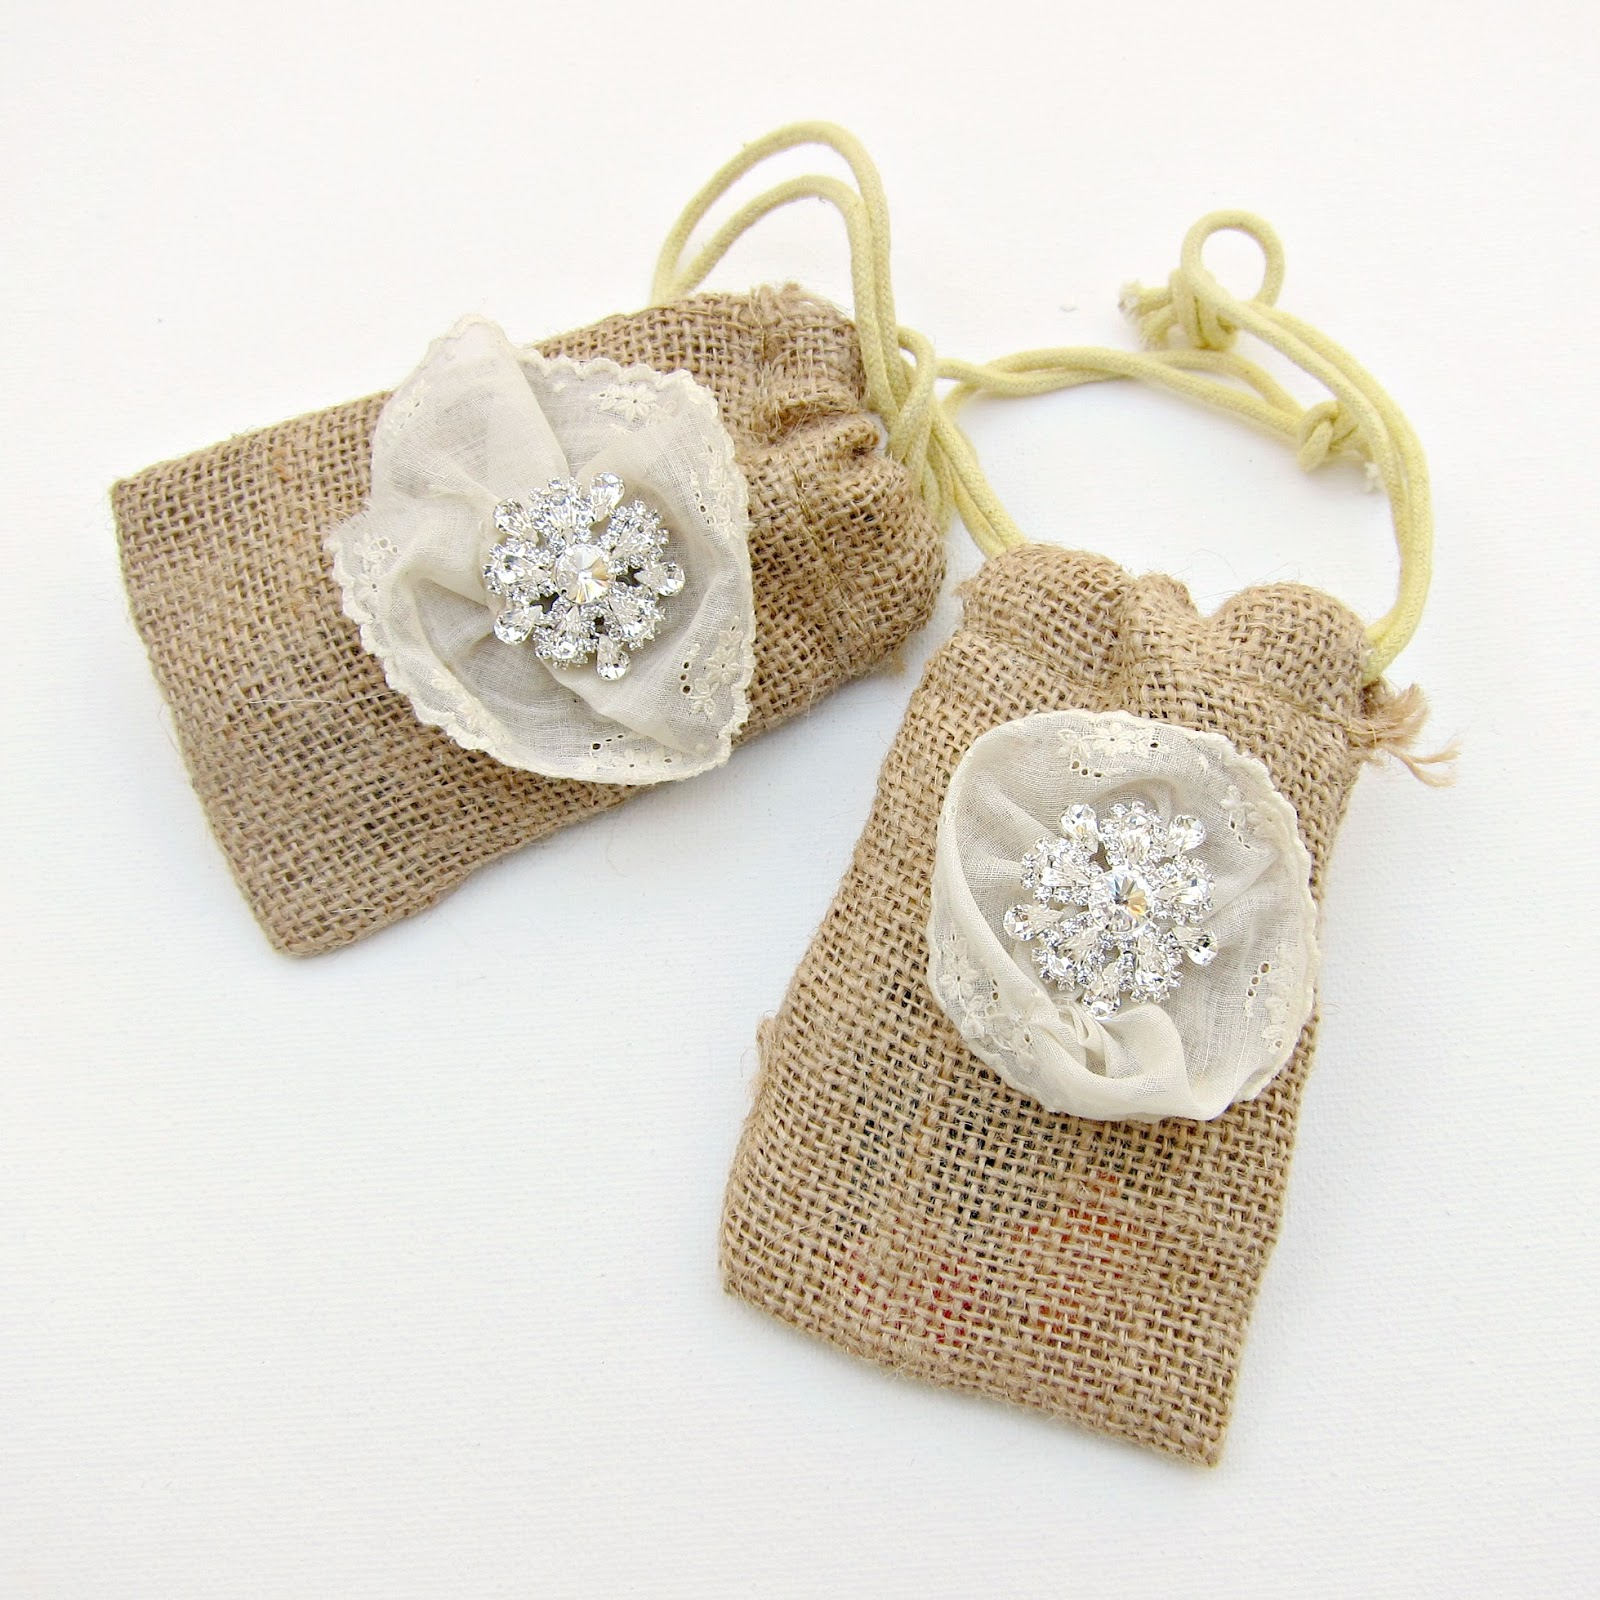 Burlap Wedding Favor Bags Diy : ... You can keep it casual or dress it up like I did with these gift bags